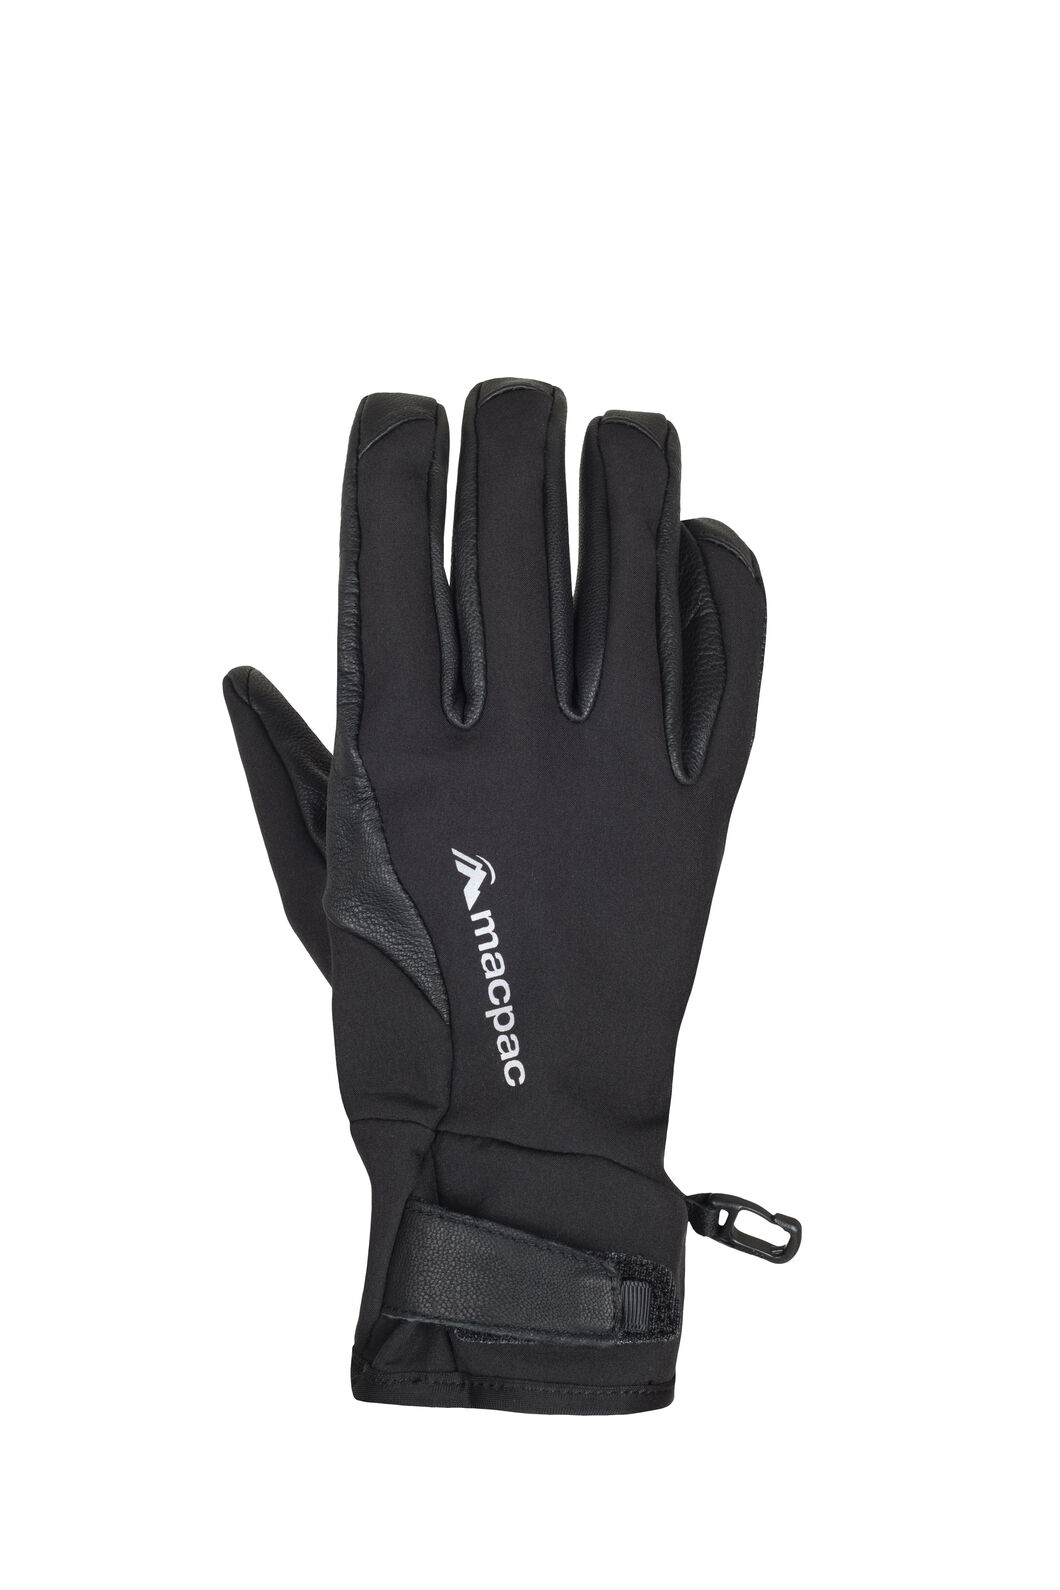 Macpac Dash Glove, Black, hi-res